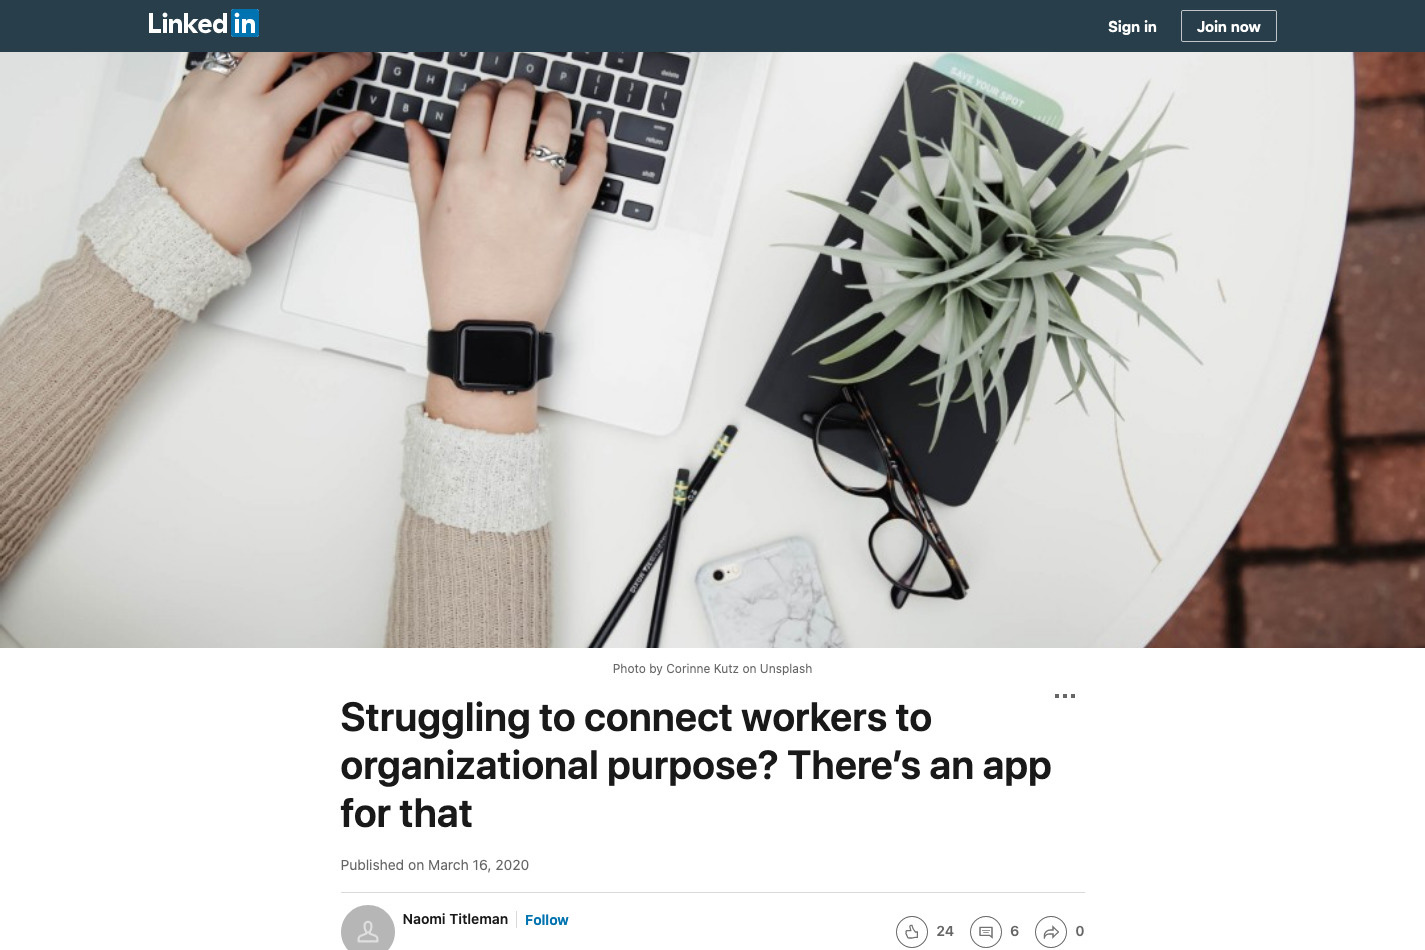 Struggling to connect workers to organizational purpose? There's an app for that